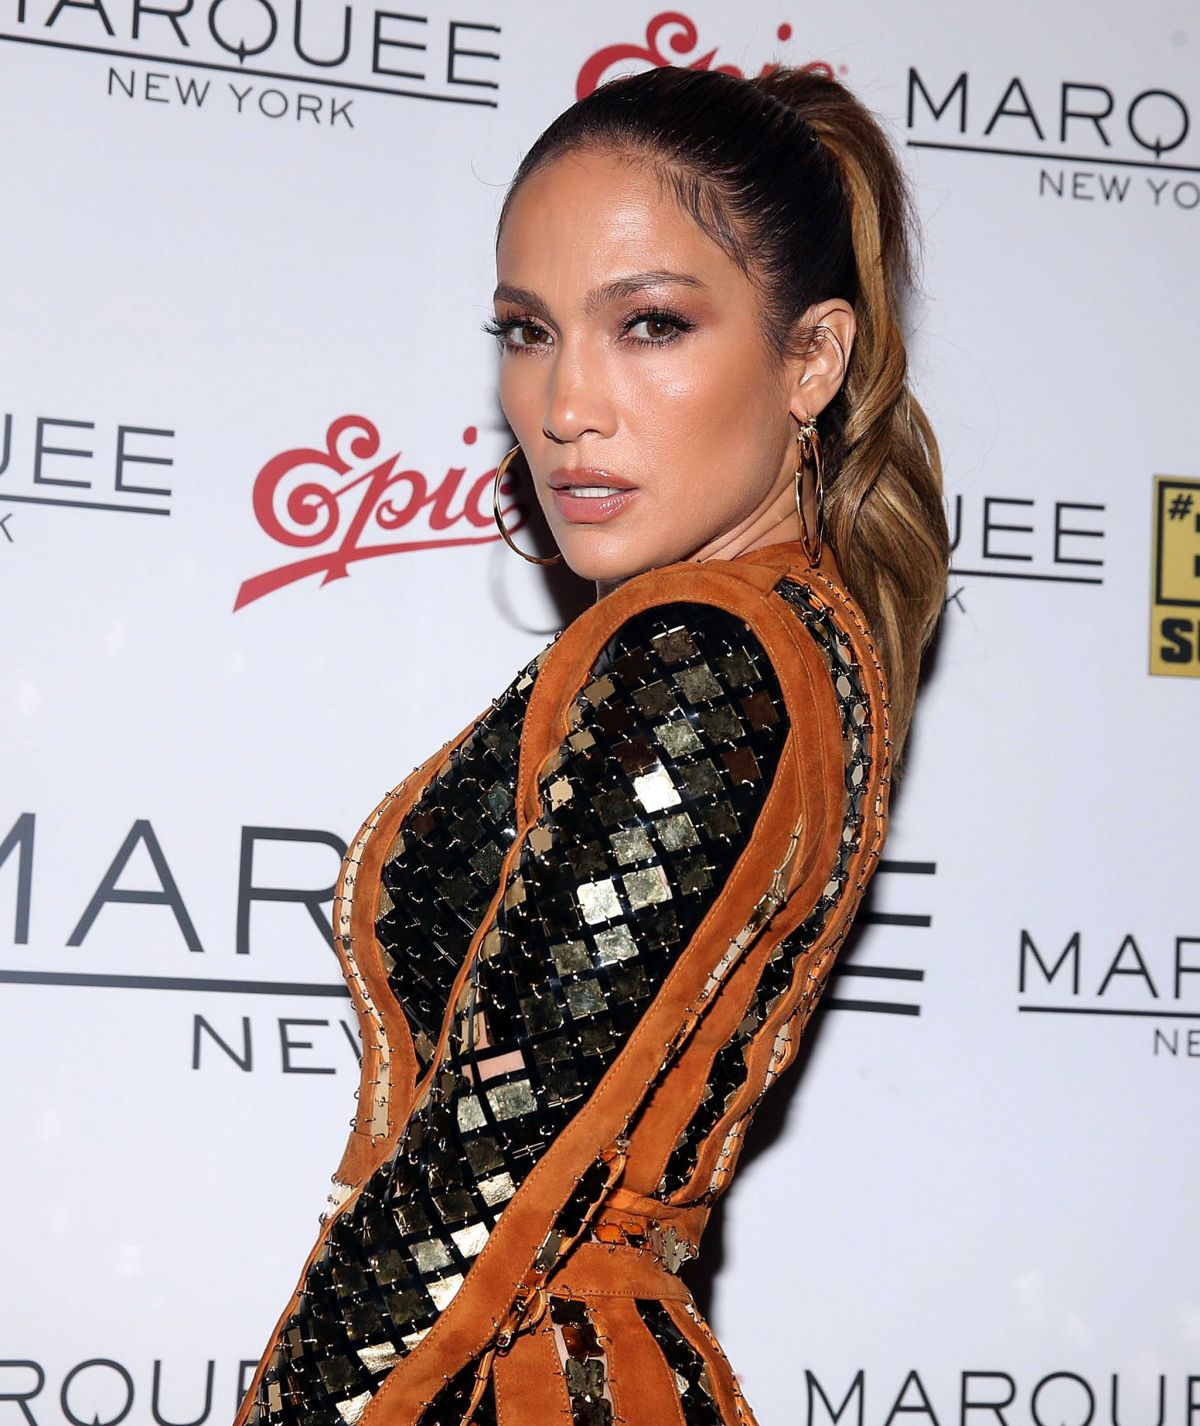 HD Photos of 'Shades of Blue' actress Jennifer Lopez at 2016 MTV VMA After Party in NYC